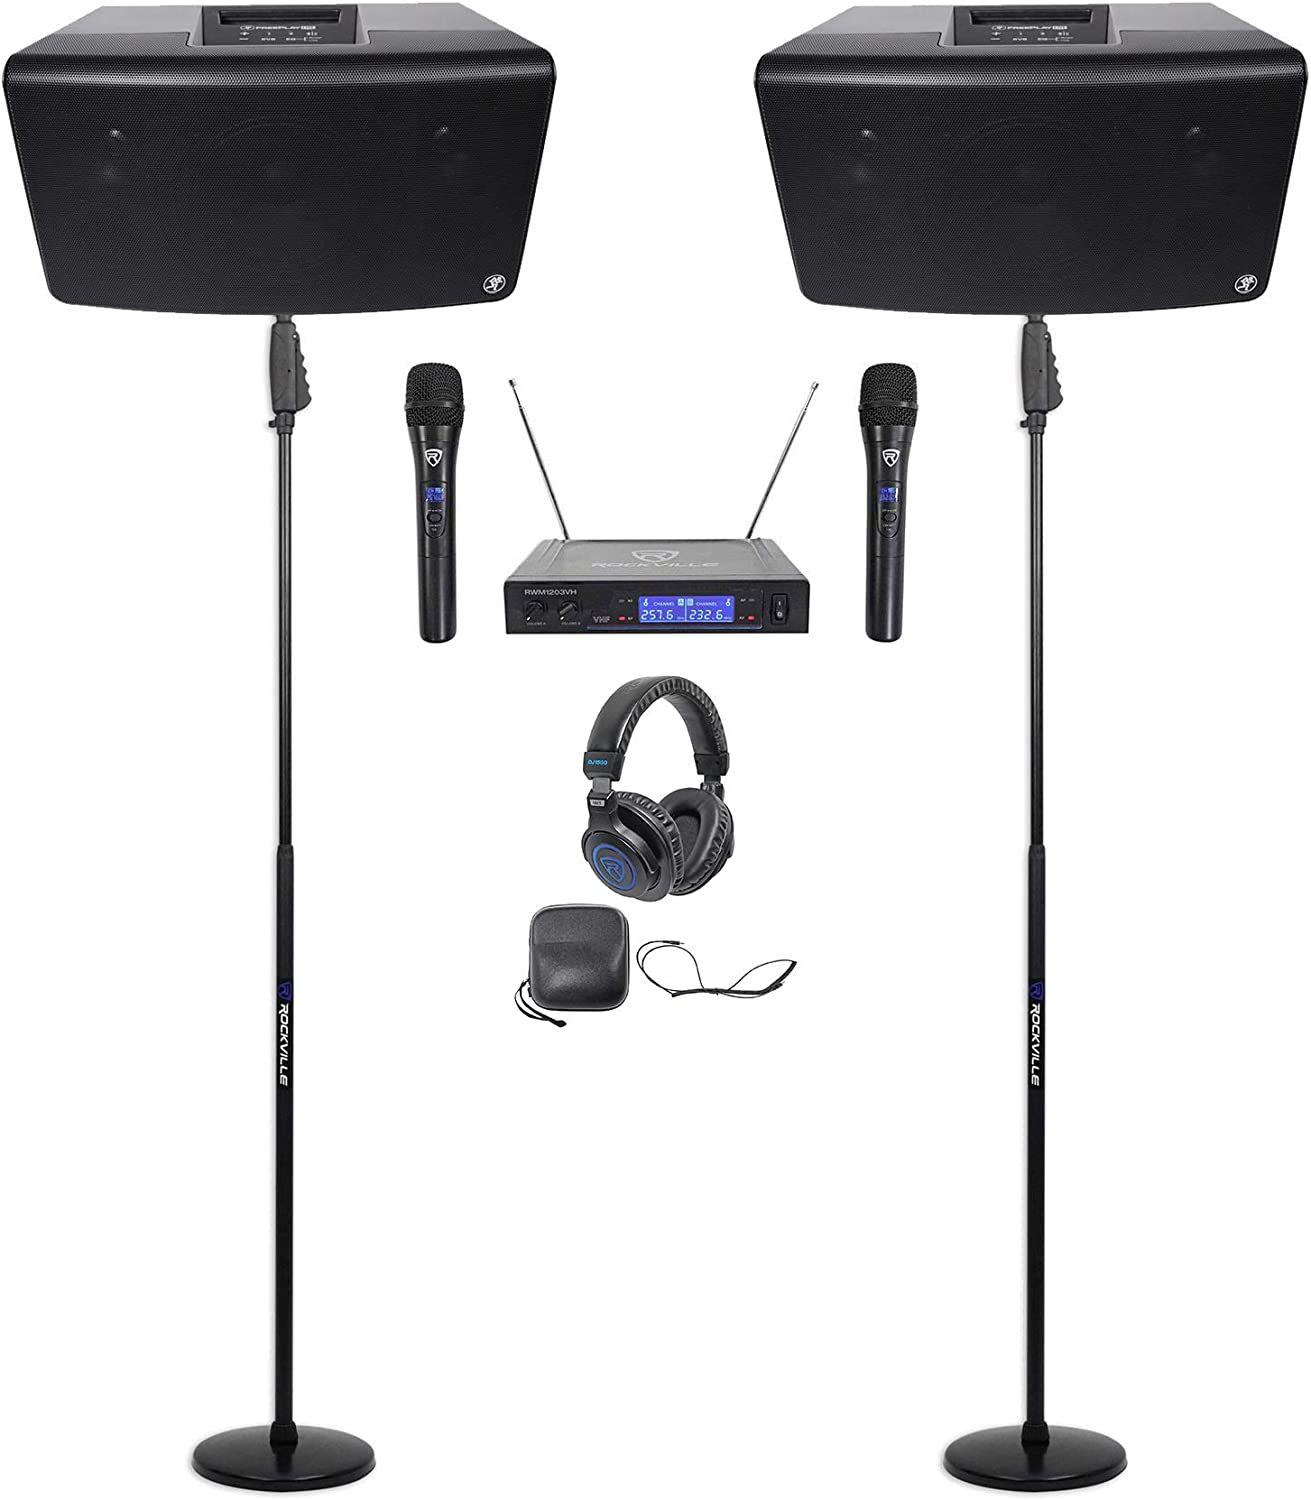 "2 Mackie FreePlay LIVE Rechargeable 6"" Bluetooth Speakers+Stands+Mics+Headphones 71dw36byazLSL1500_"